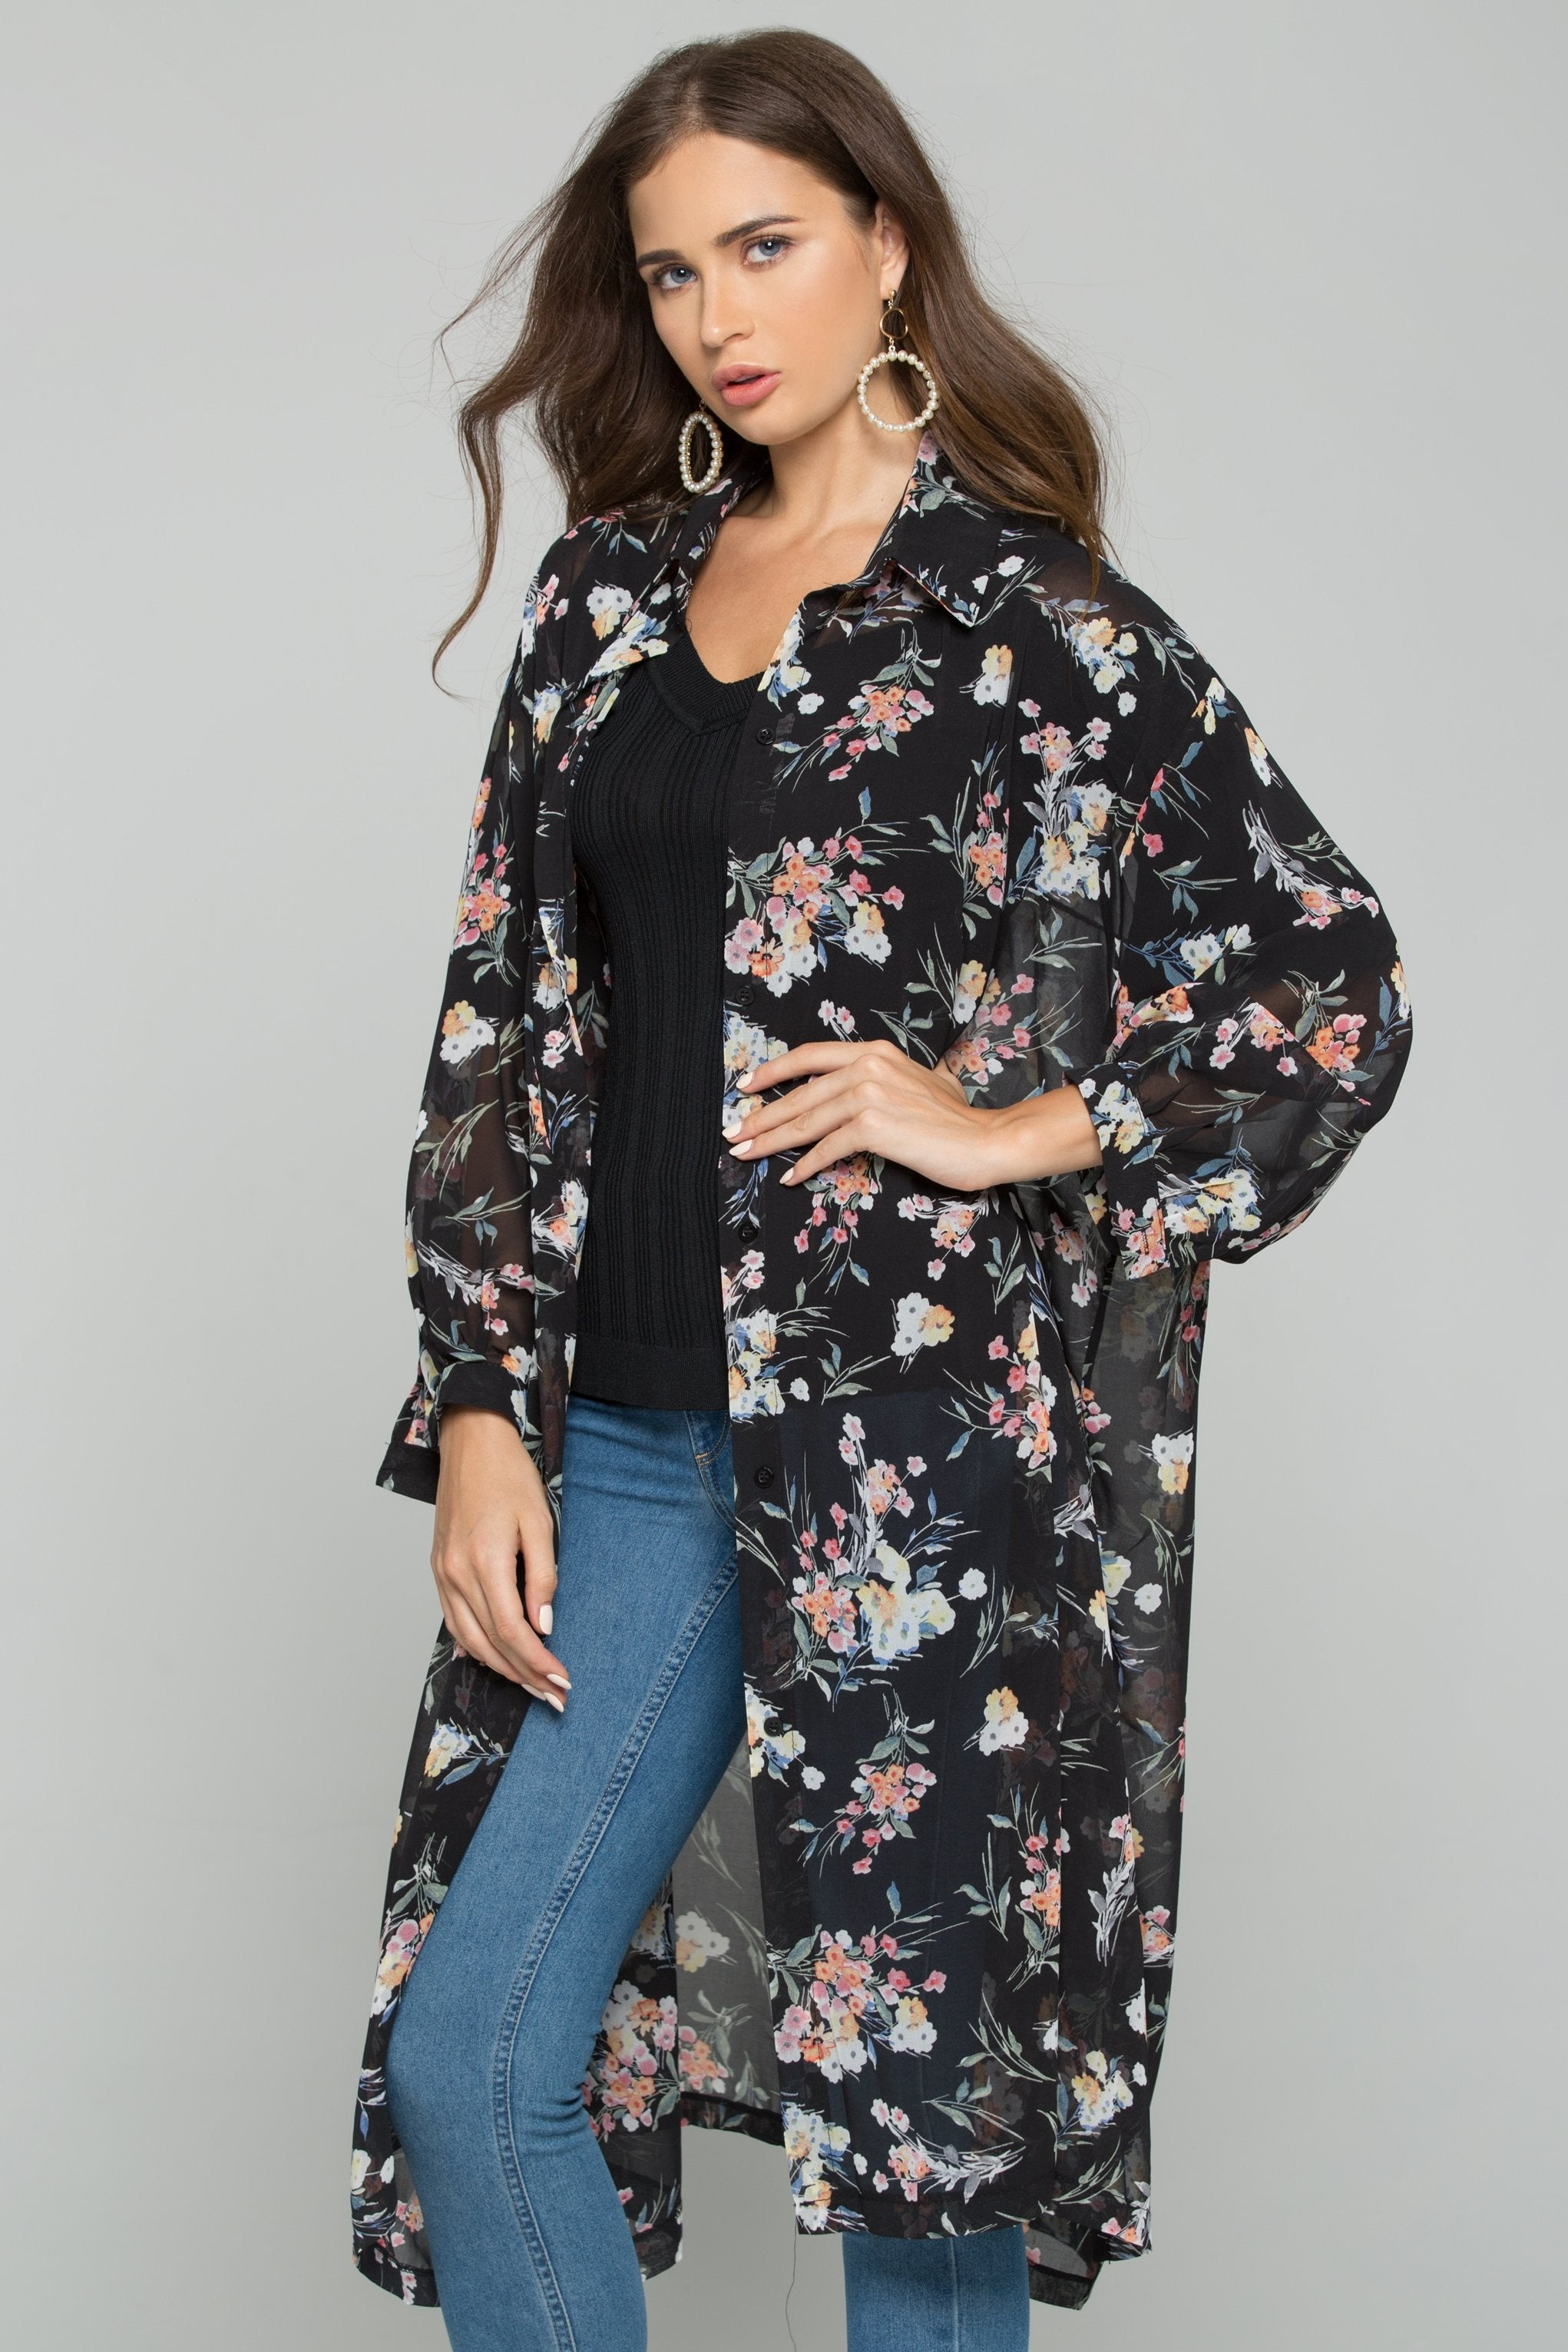 Black Chiffon Floral Print Hijab Long Sleeved Shirt